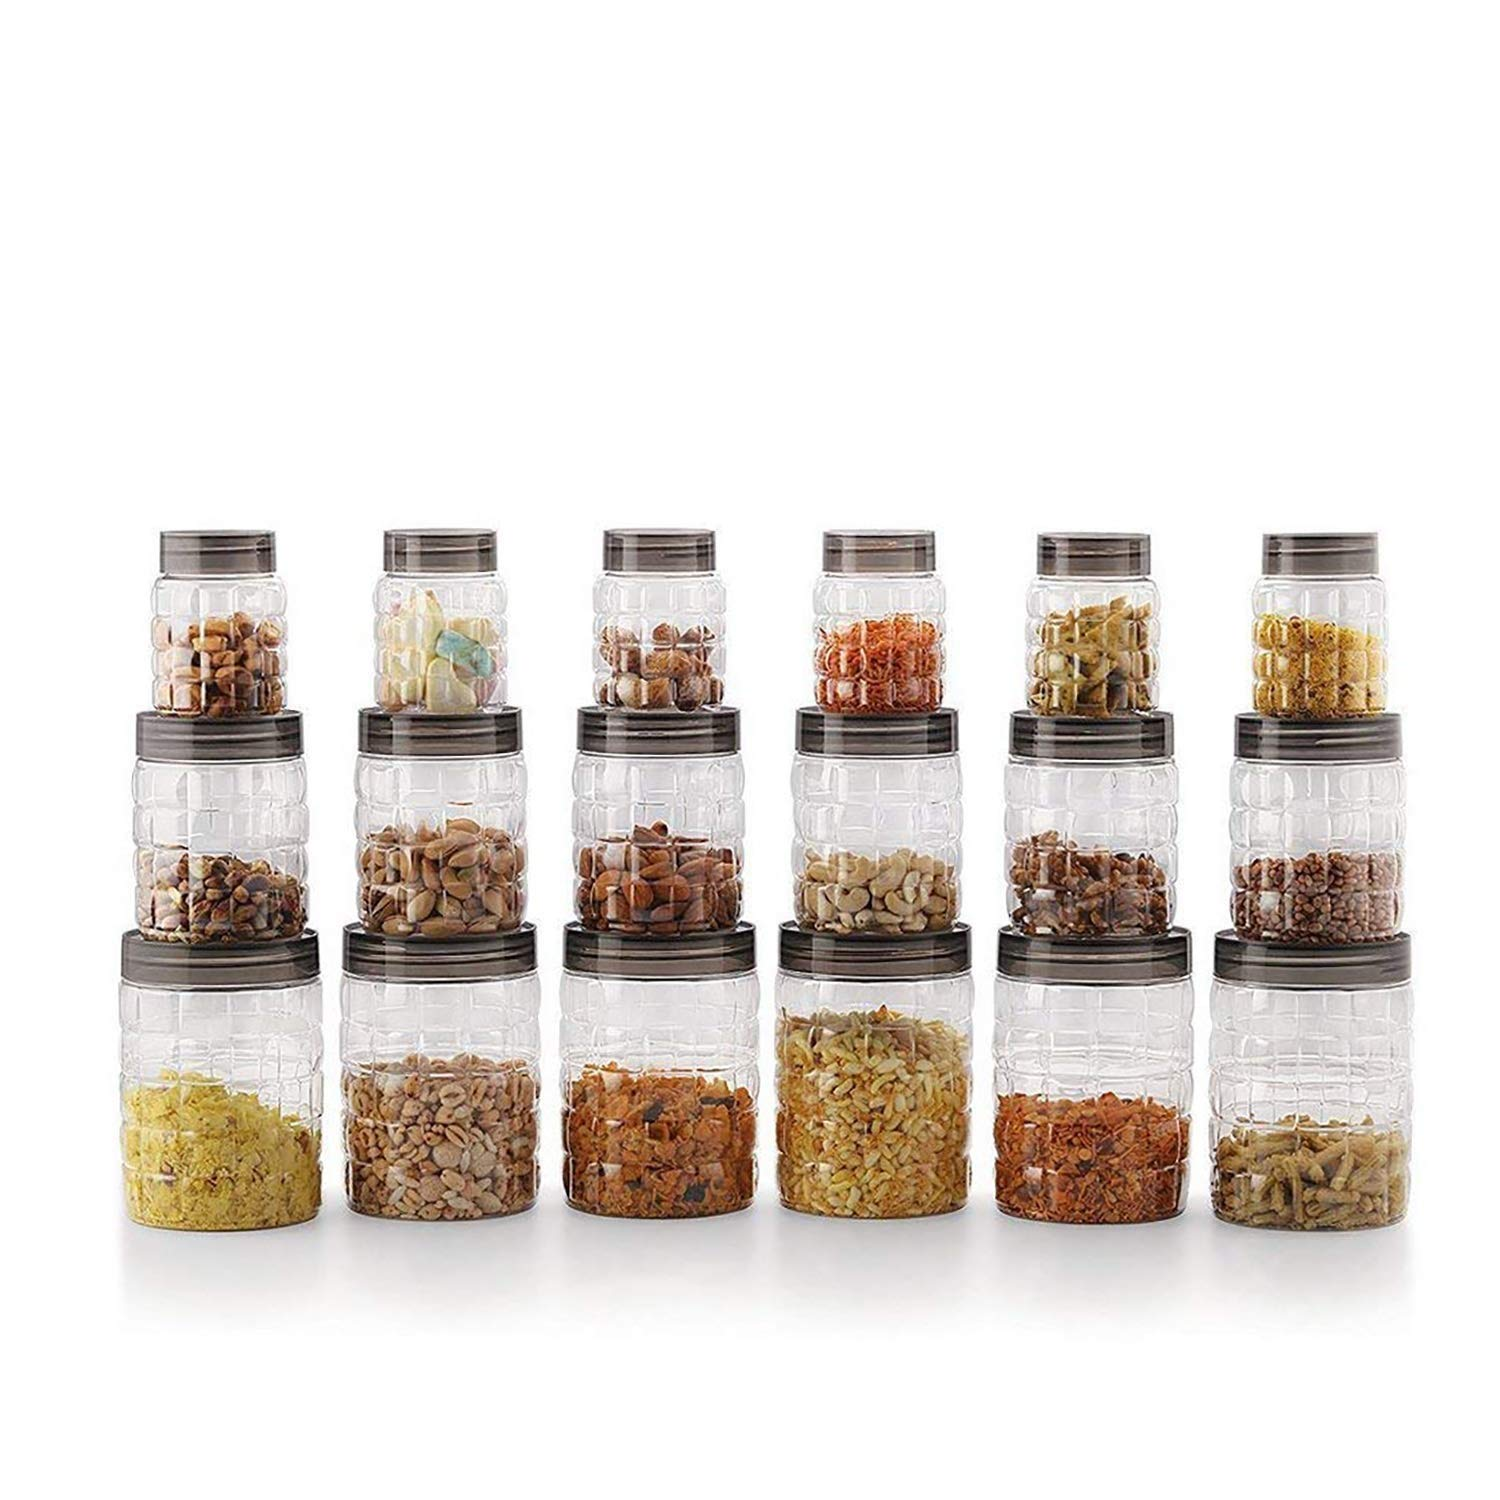 Cello Checkers Plastic PET Canister Set, 18 Pieces, Clear product image